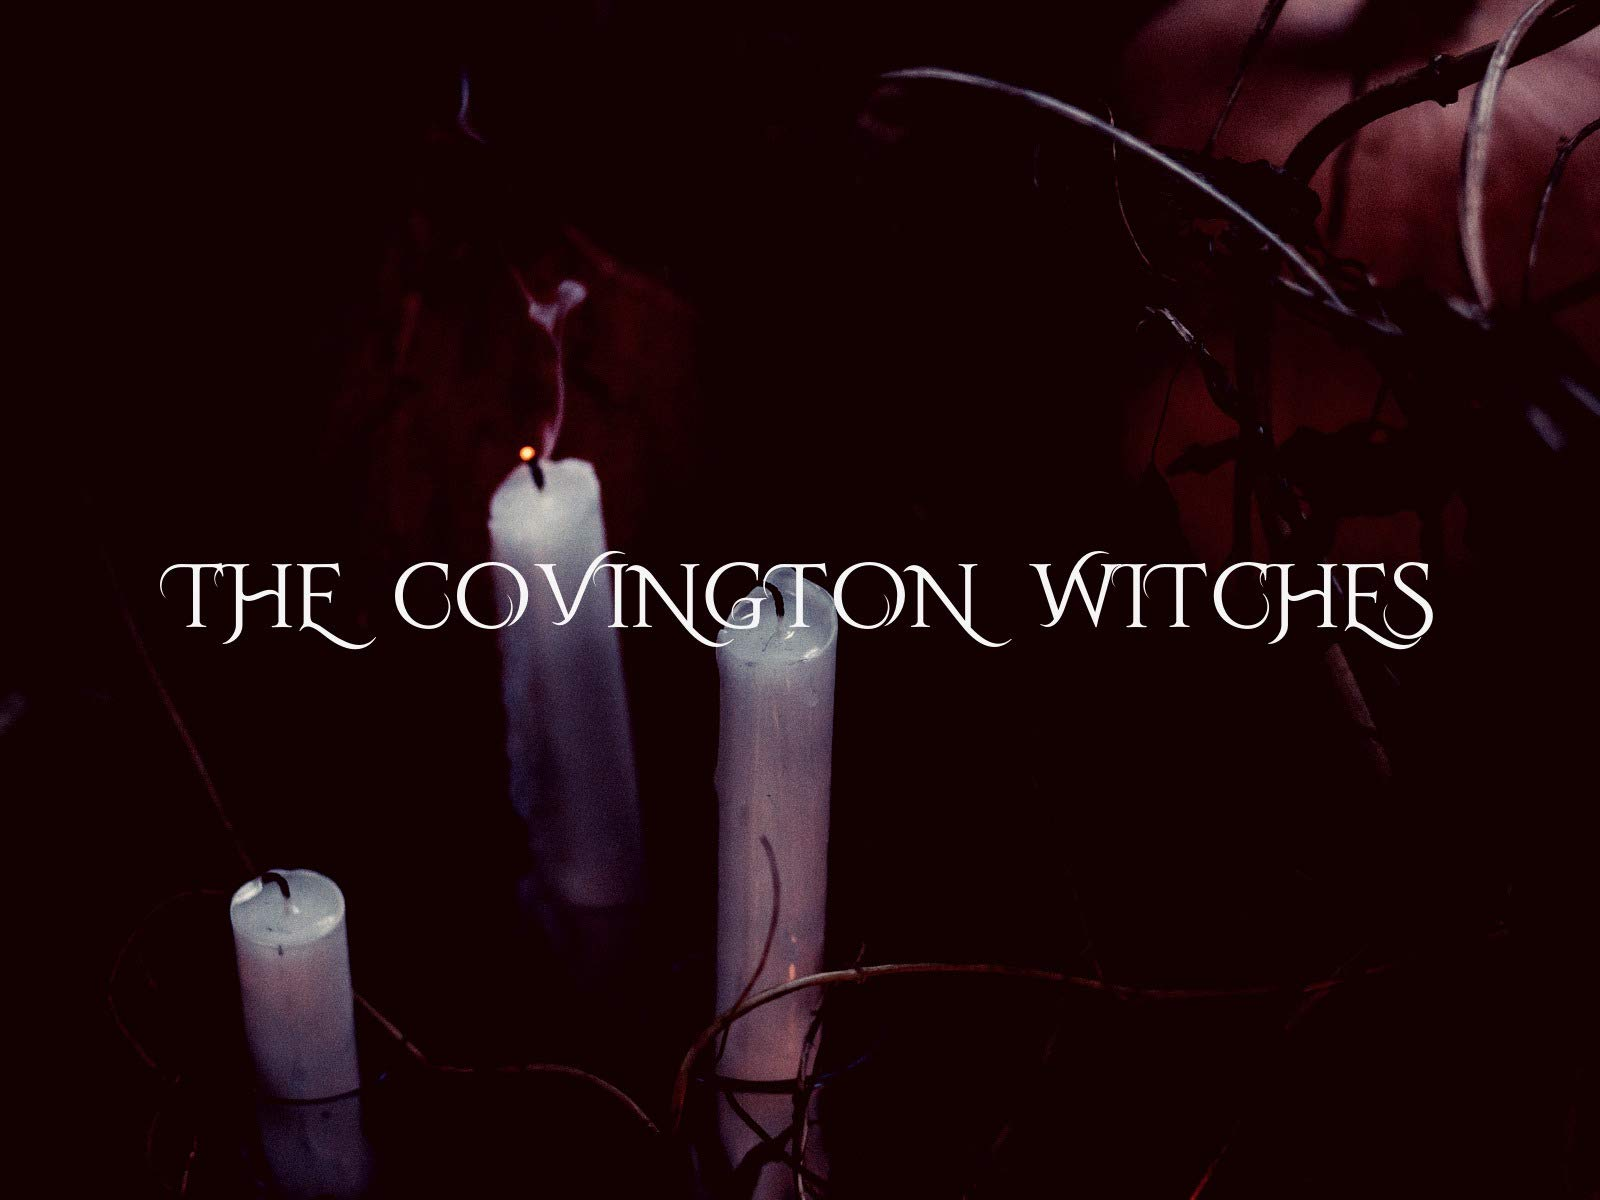 The Covington Witches